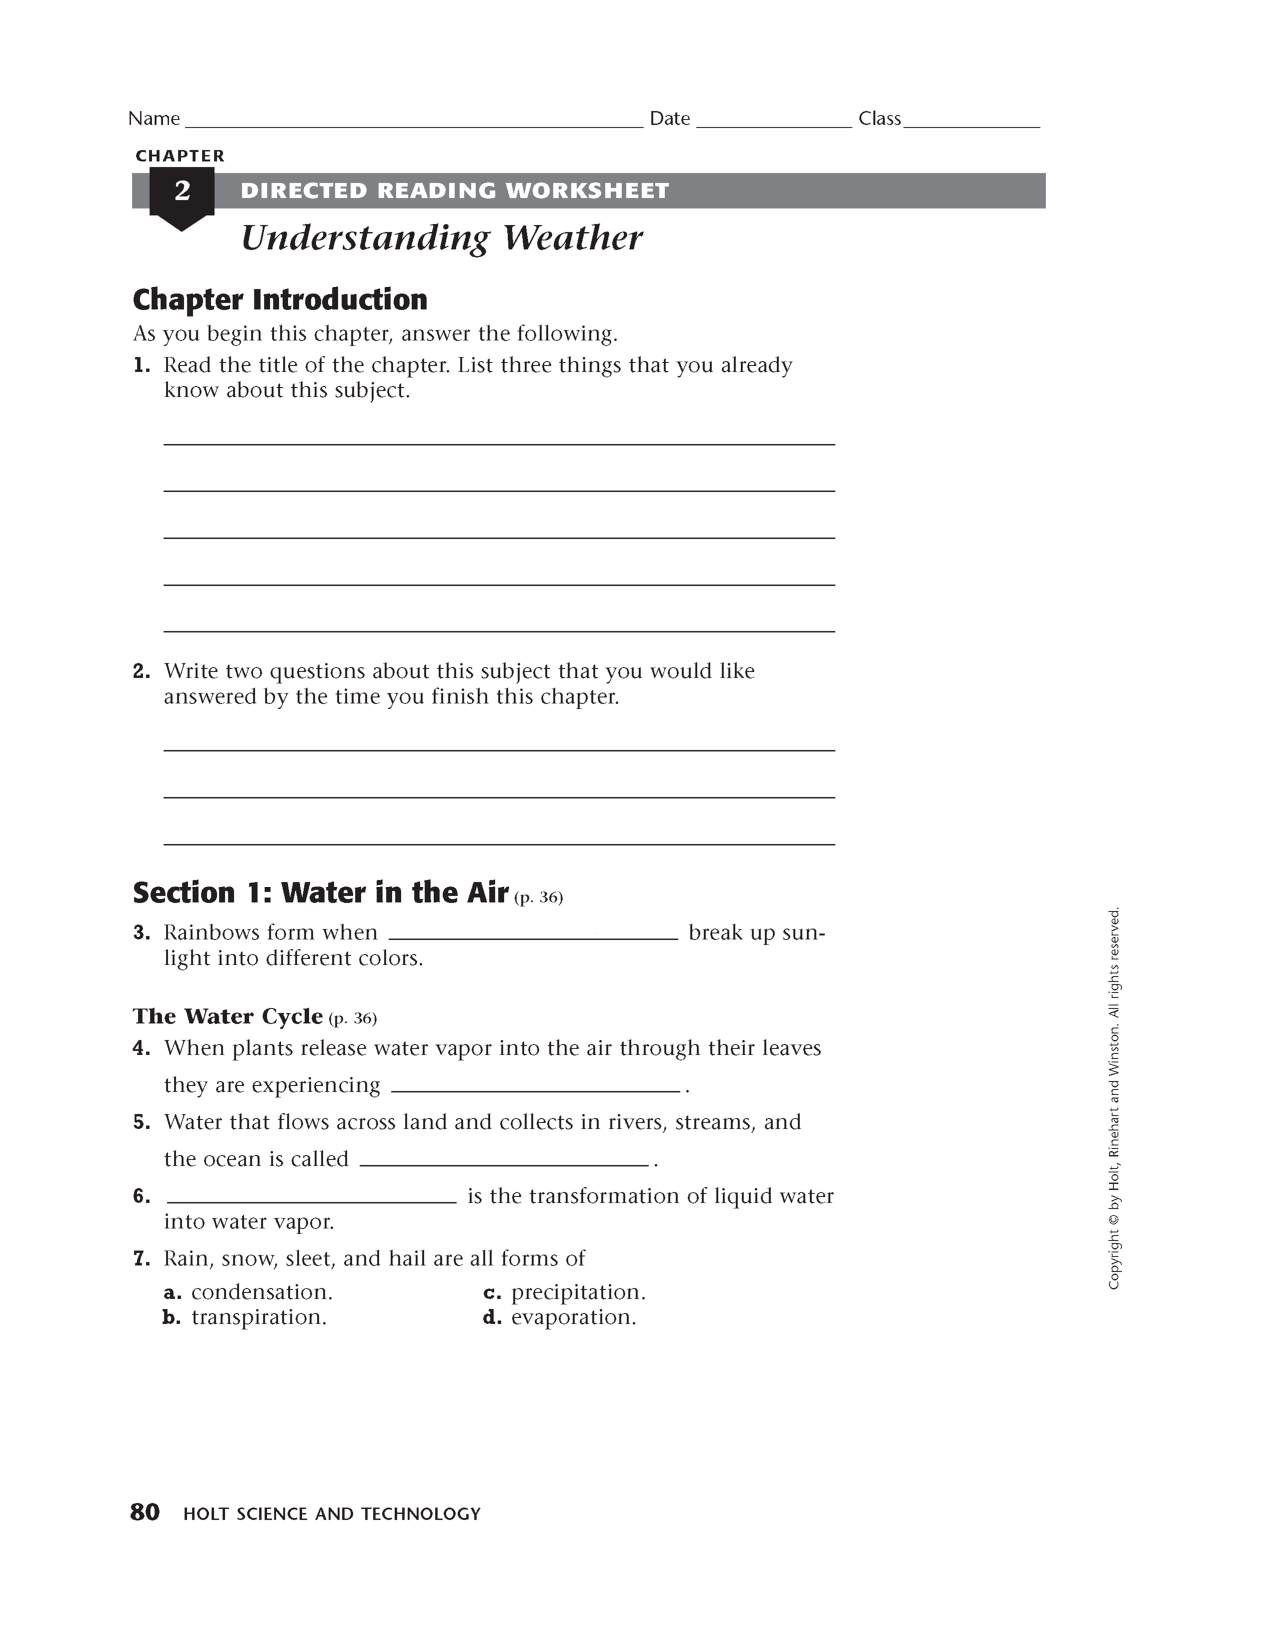 Holt Science and Technology Worksheet Answers   Science worksheets [ 1650 x 1275 Pixel ]